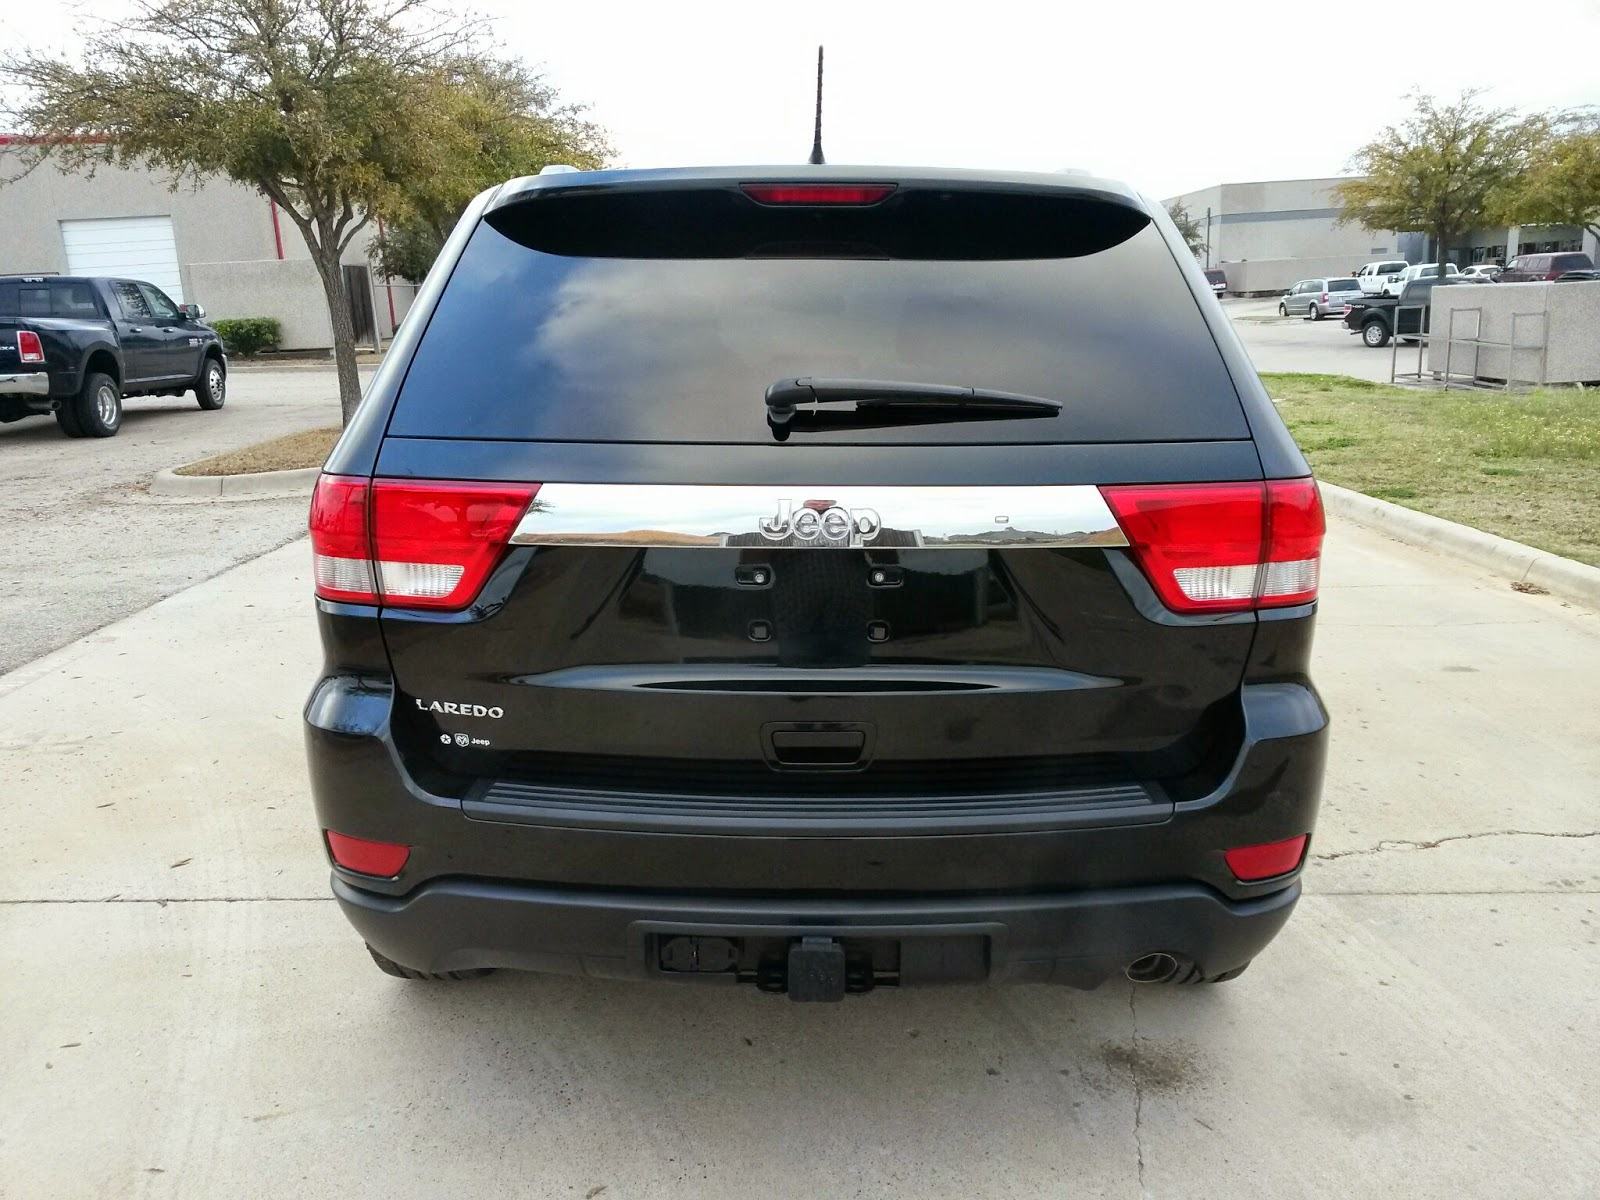 26 991 pay 469 2012 jeep grand cherokee 4 dr wagon rwd for Payne motors mission tx